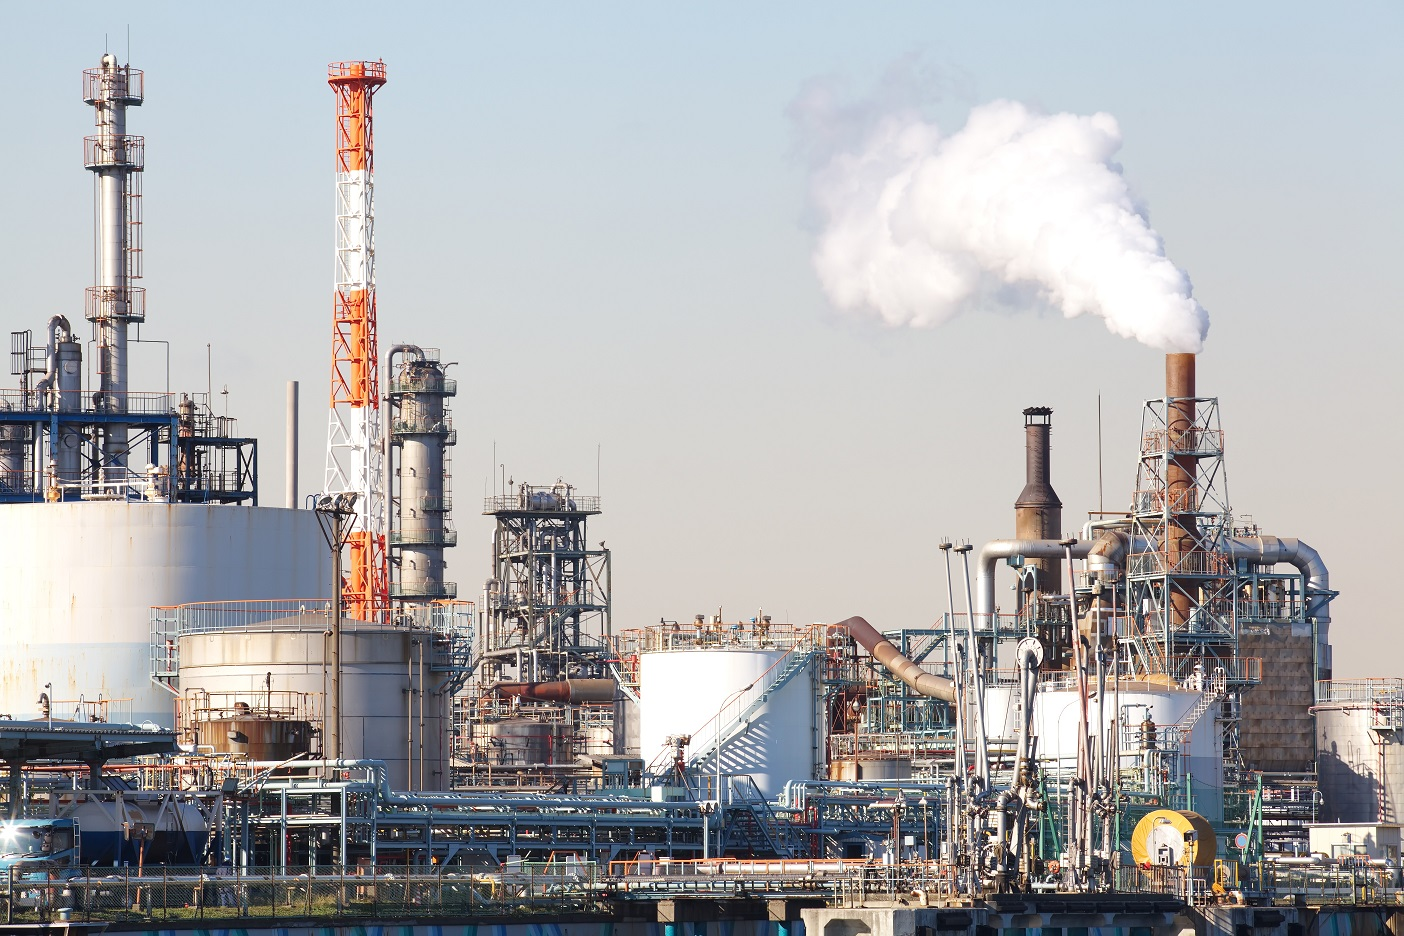 Fire Protection Systems Used in Oil and Gas Process Facilities